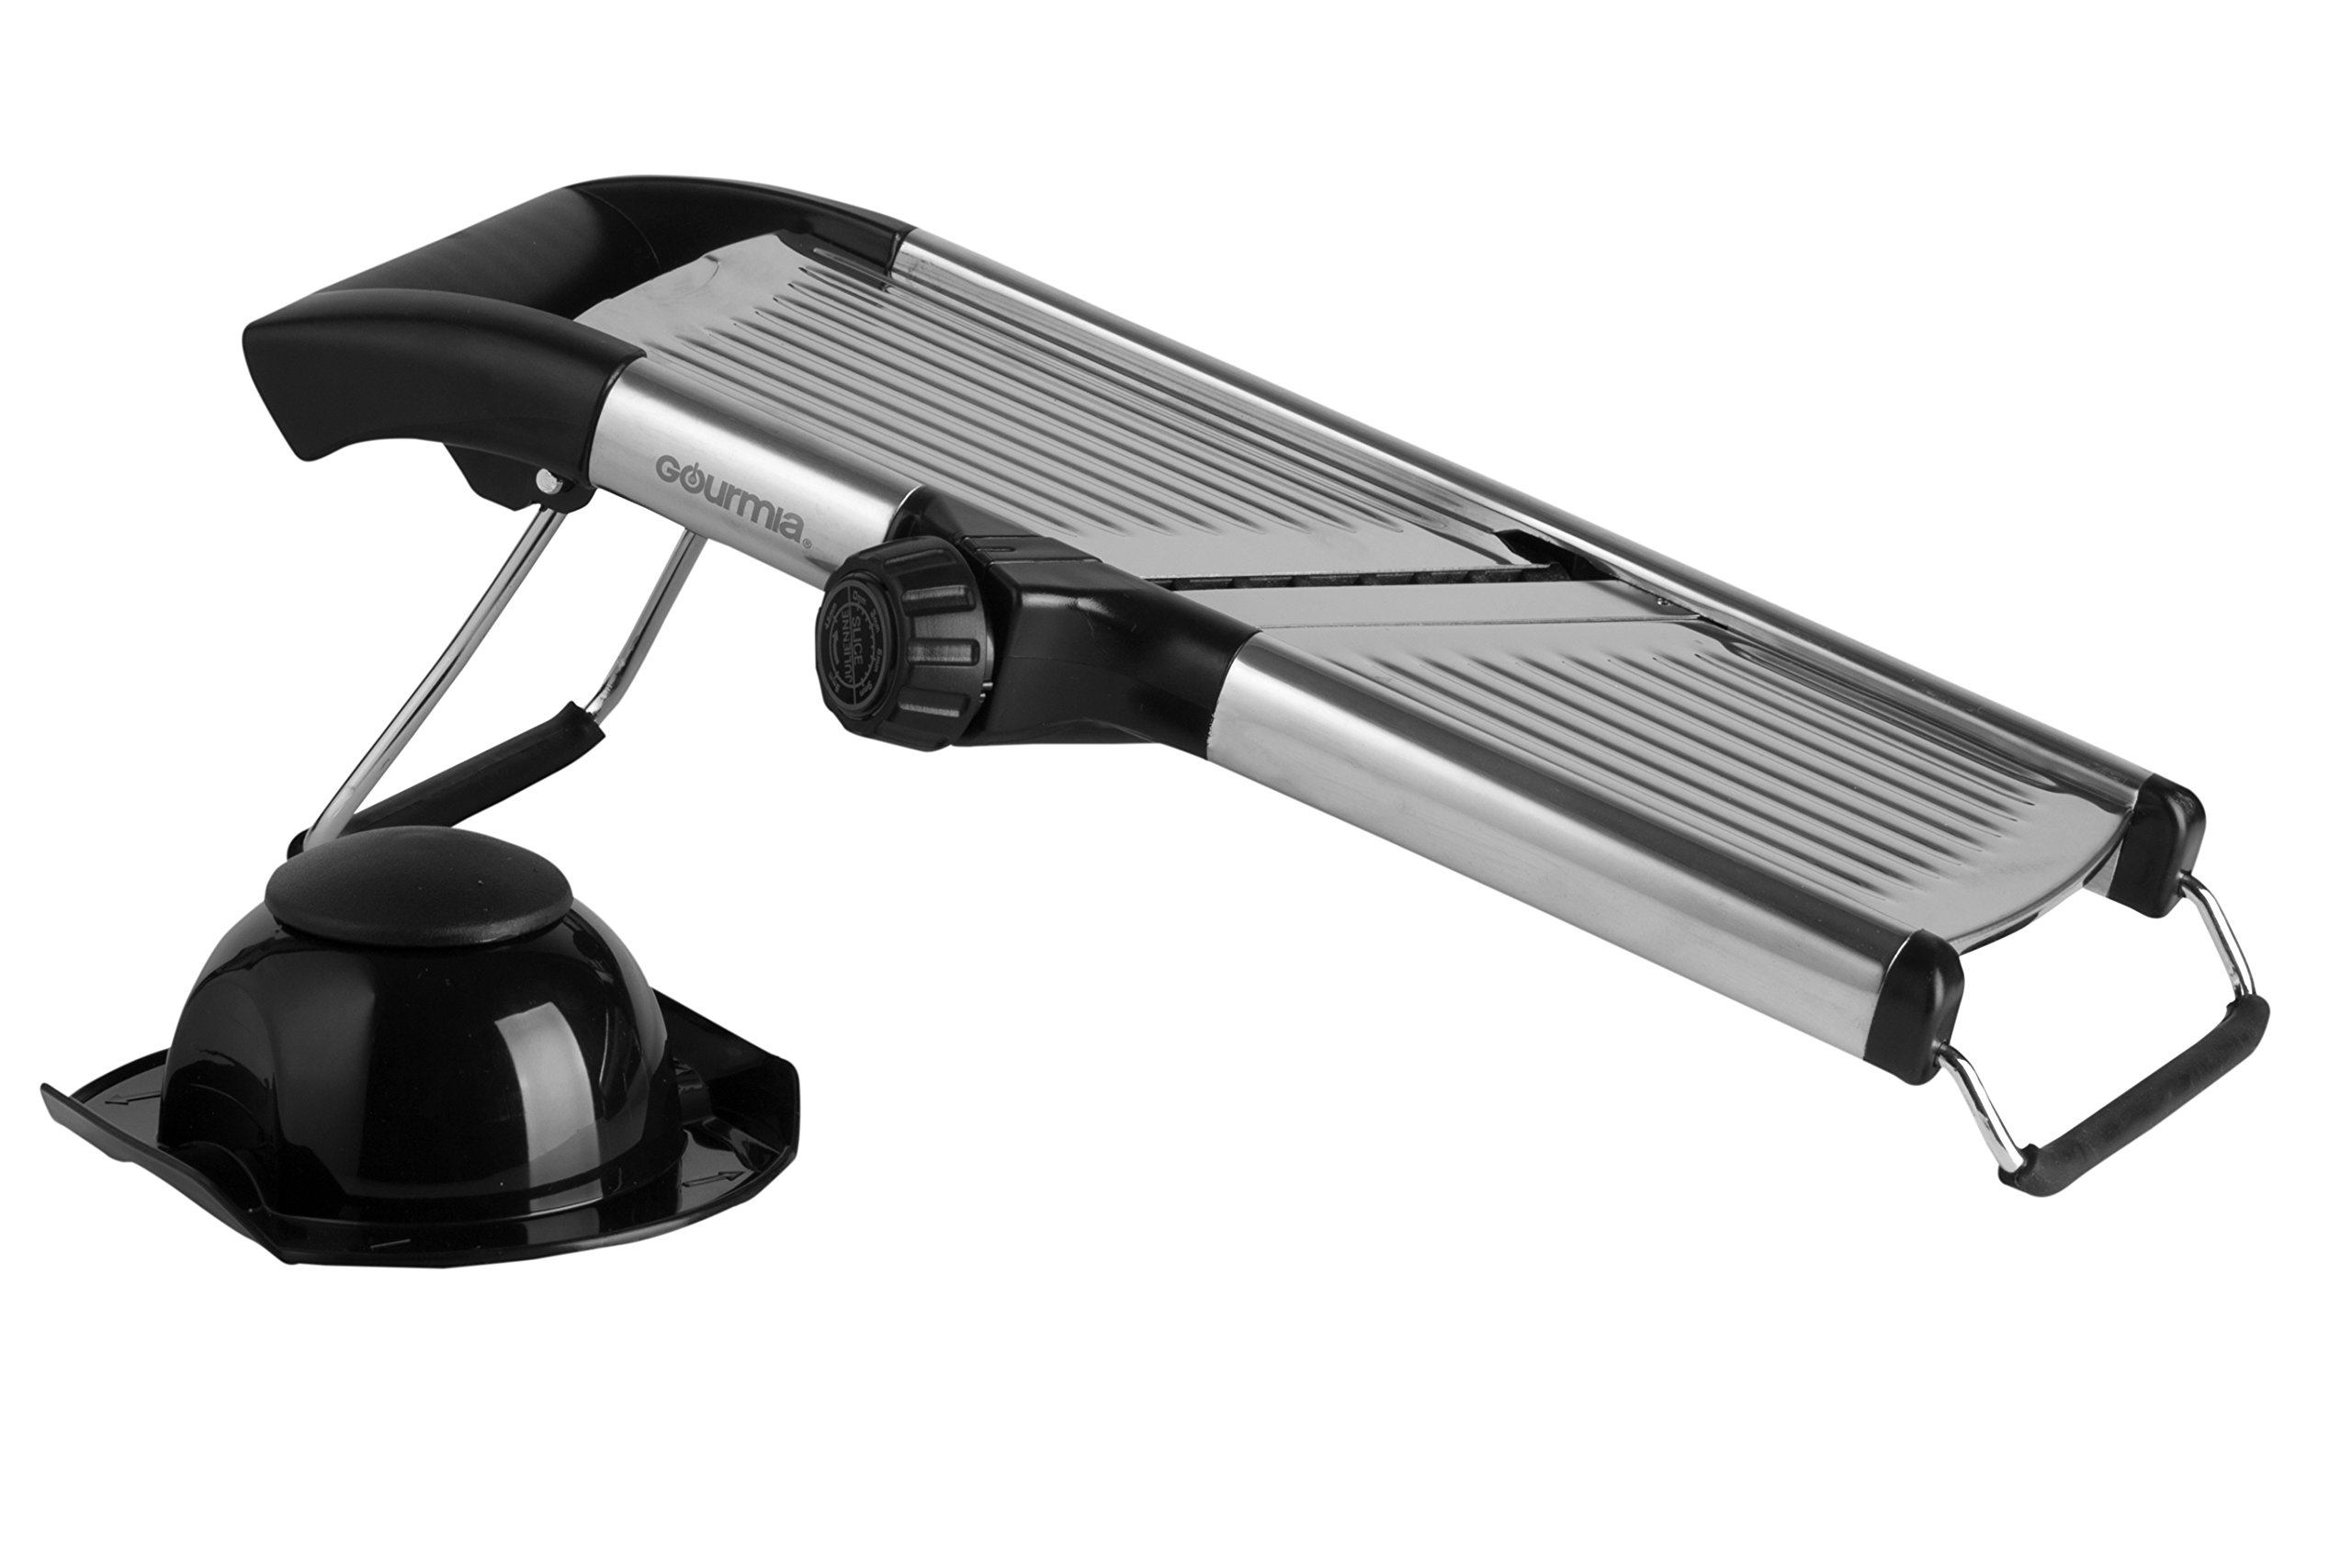 Gourmia GMS9105 Adjustable Stainless Steel Mandoline Slicer Dial-Style Kitchen Slicer With Built in Adjustable Blades Fine to Thick Slice & Julienne Settings by Gourmia (Image #8)